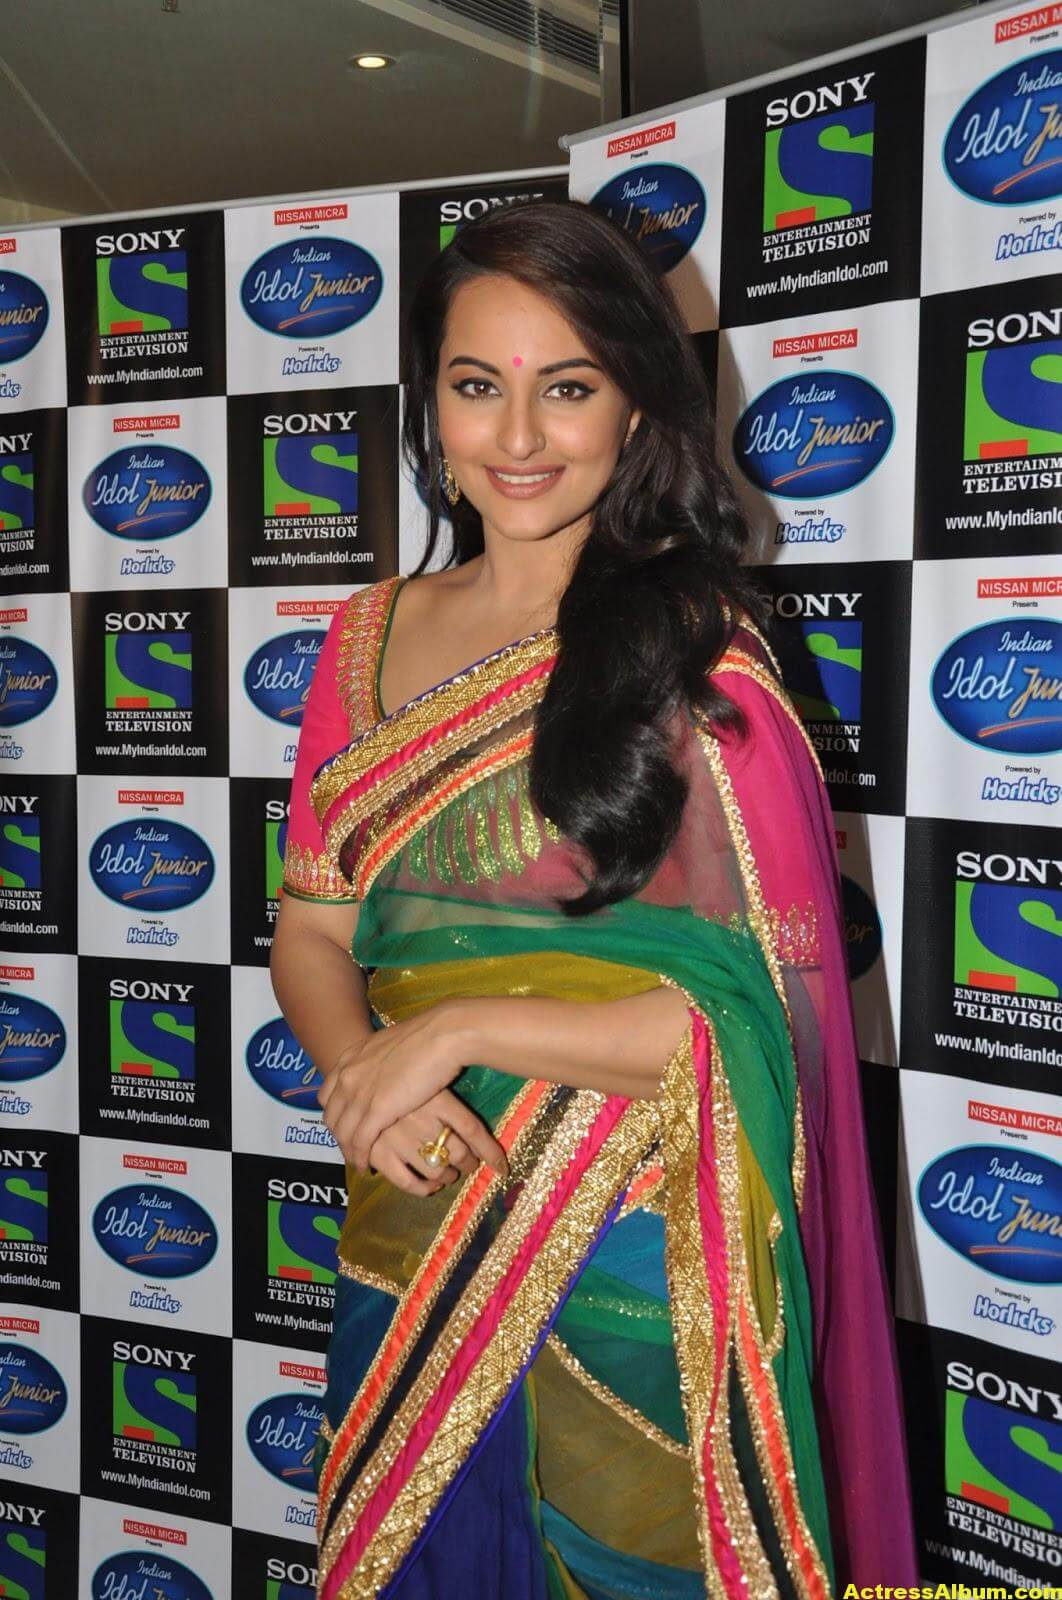 Sonakshi Sinha Looks Spicy In Colorful Saree Photoshoot 1